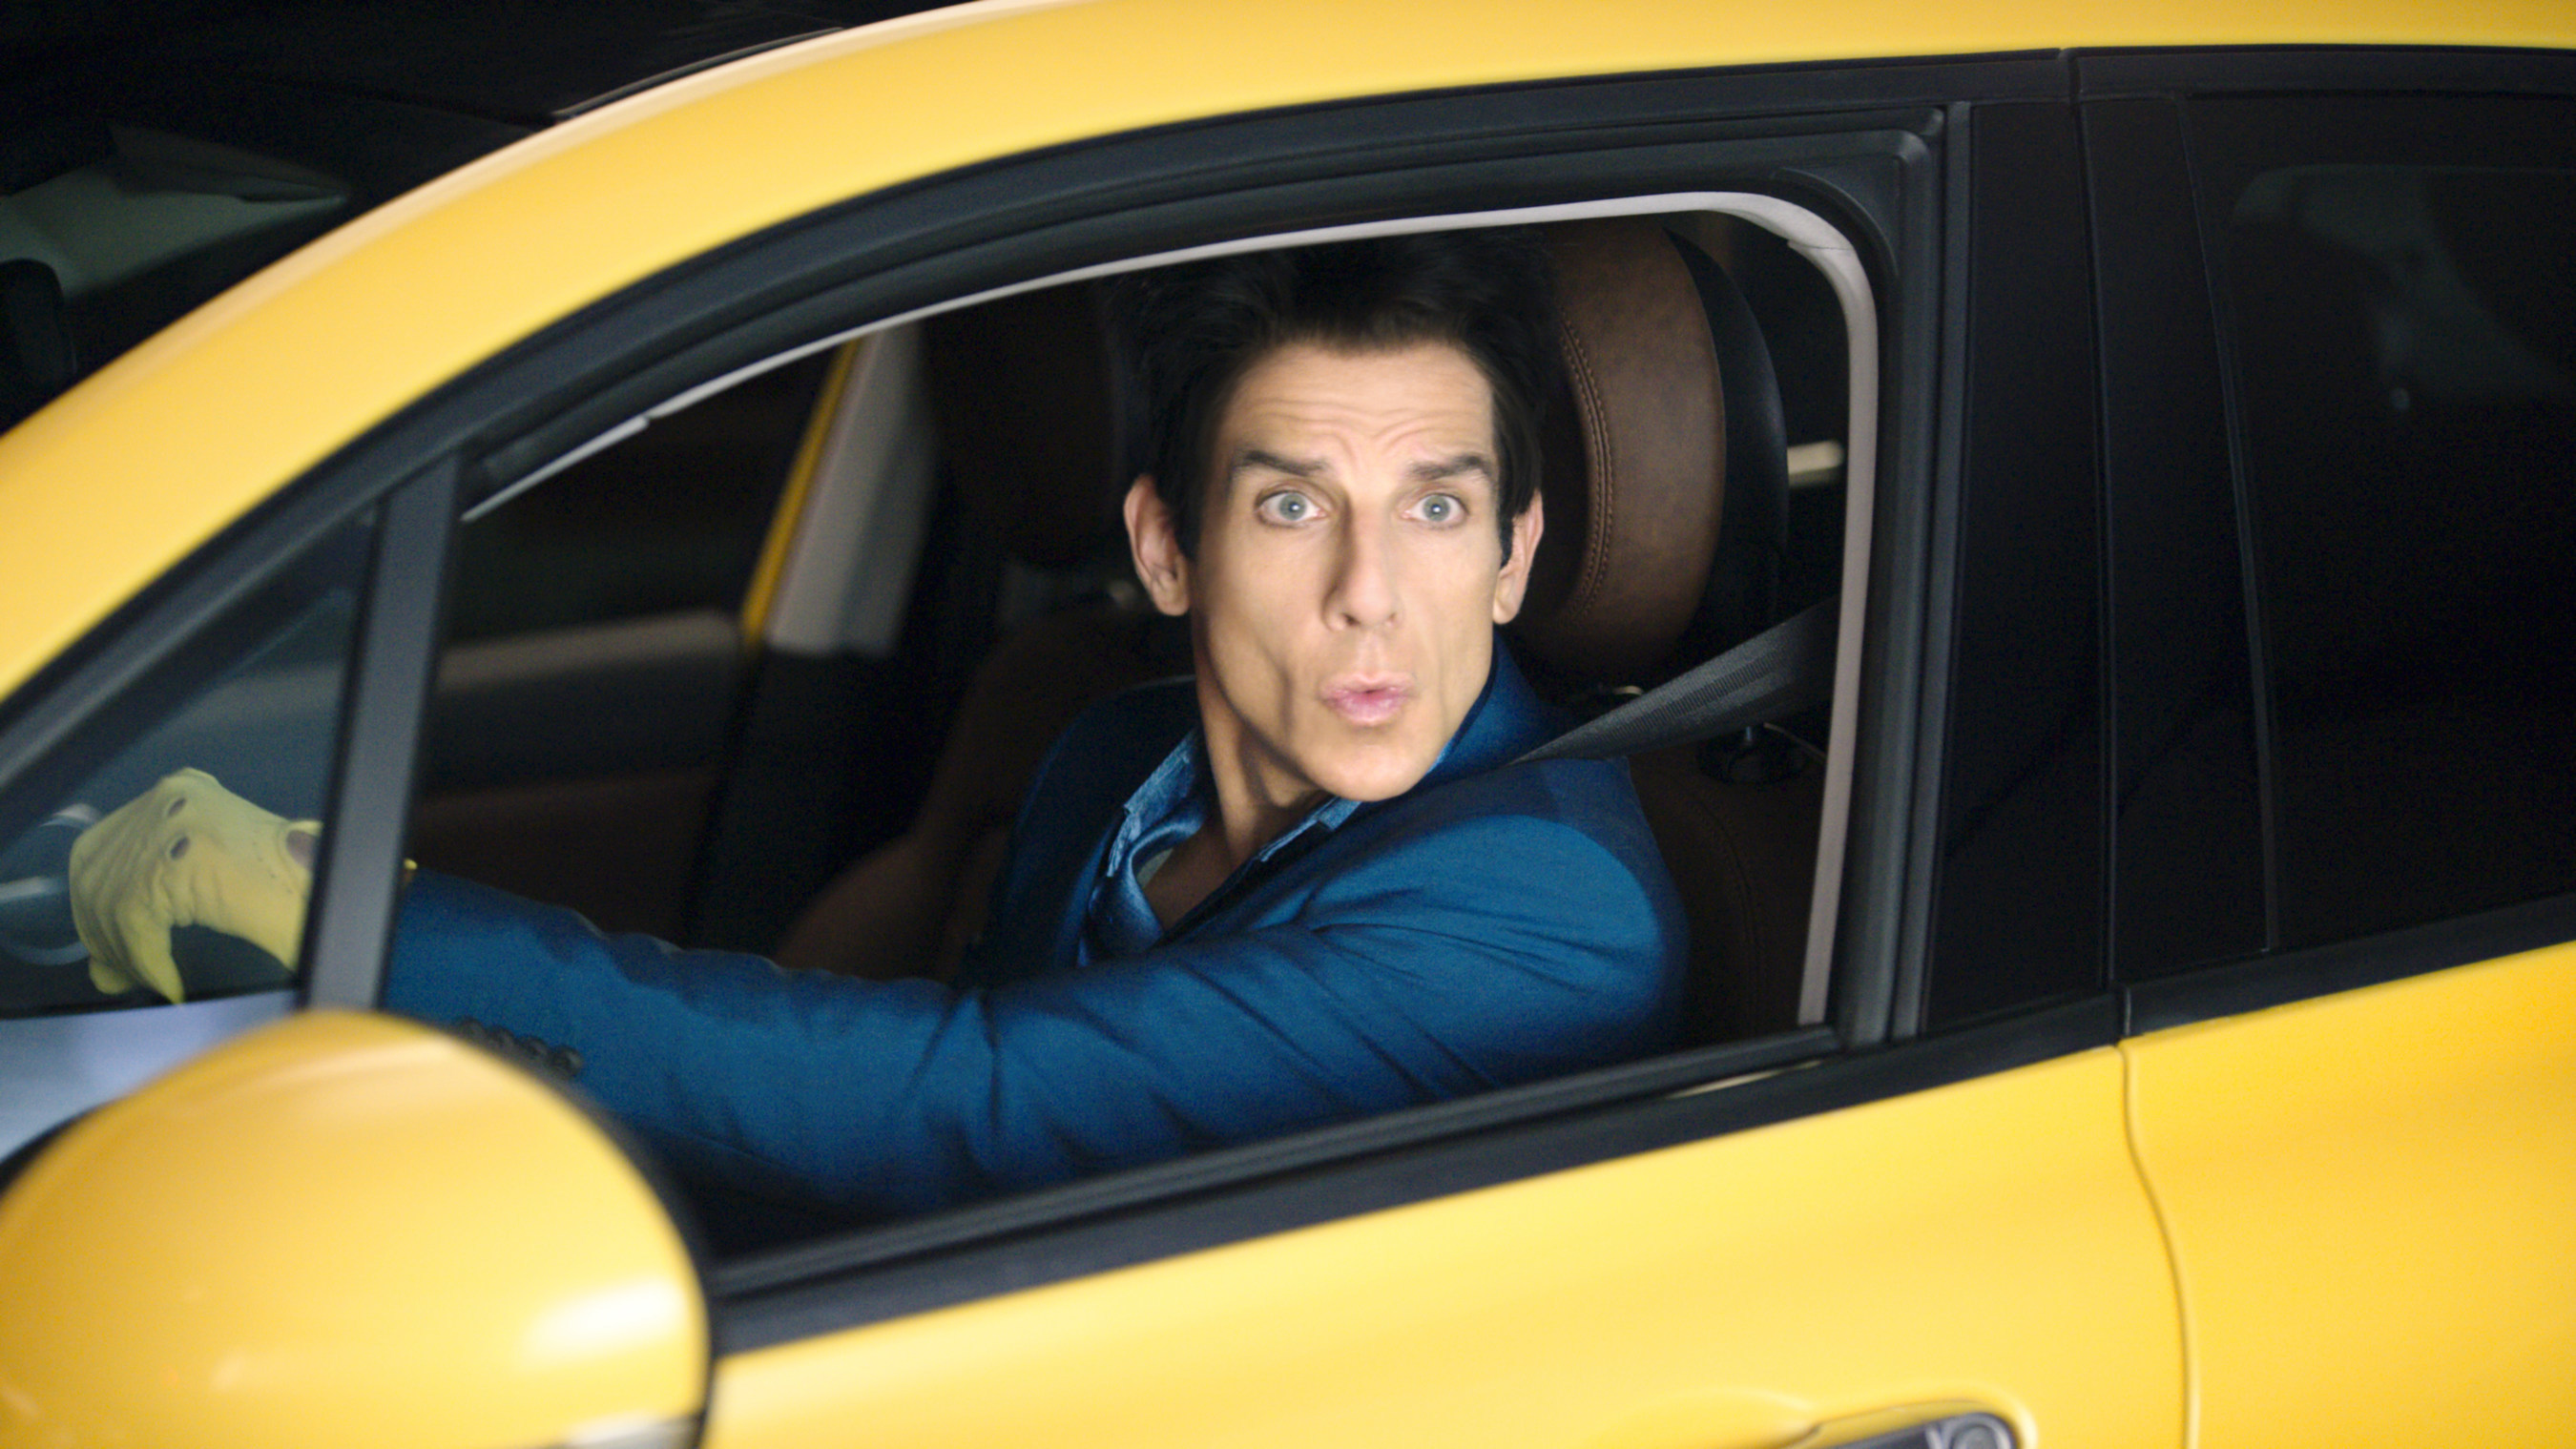 """Derek Zoolander is face of new Fiat 500X advertising campaign in partnership with FIAT Brand and Paramount Pictures upcoming film """"Zoolander No. 2"""""""